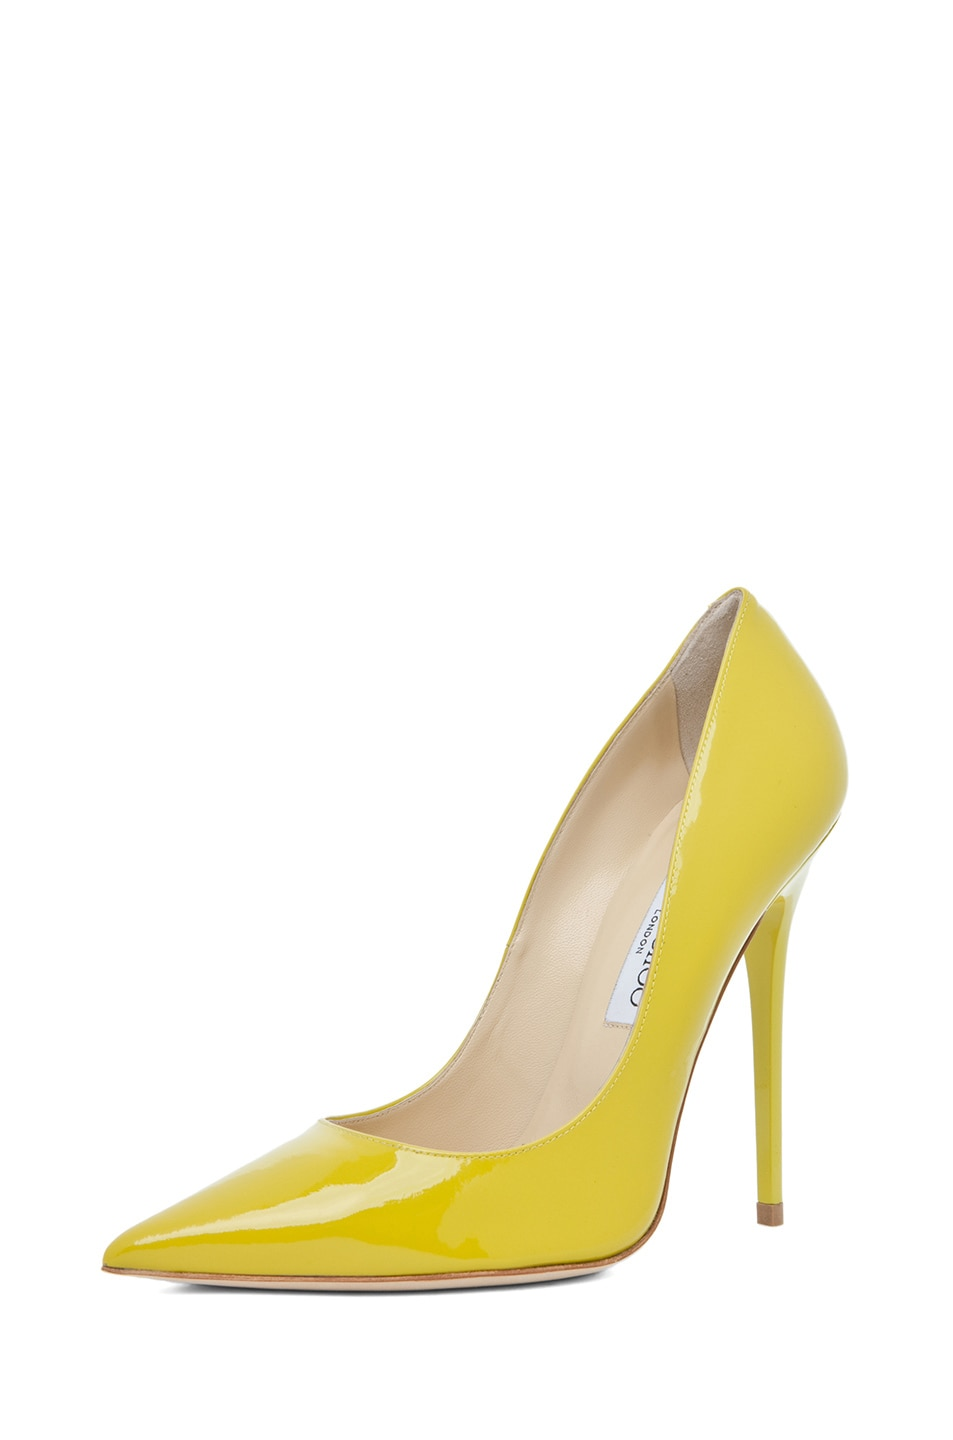 Image 2 of Jimmy Choo Anouk Pump in Citrine